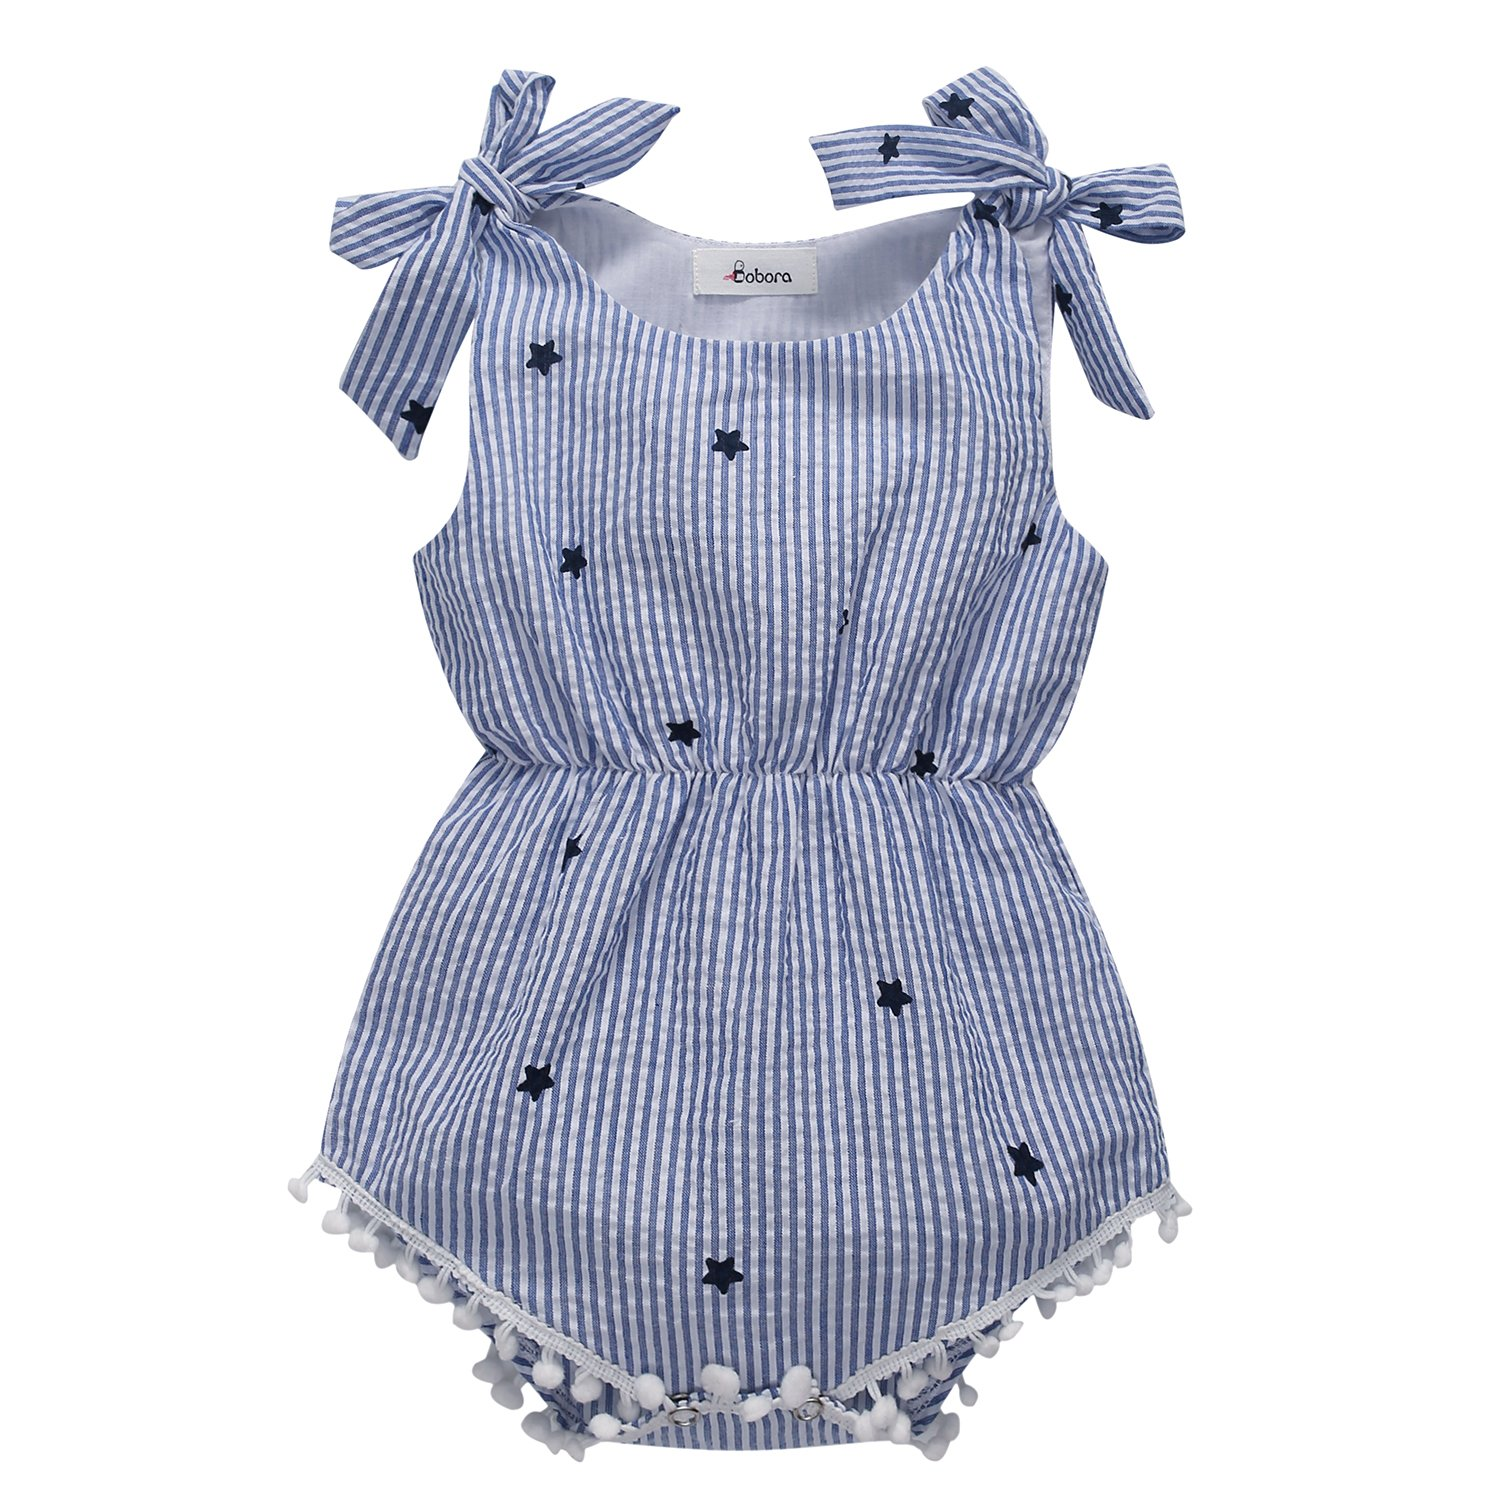 25de7c94d Star print and pineapple print two design, blue,pink,yellow stripes and  white tassles make this romper so cute. Have button for changing diaper  easily.